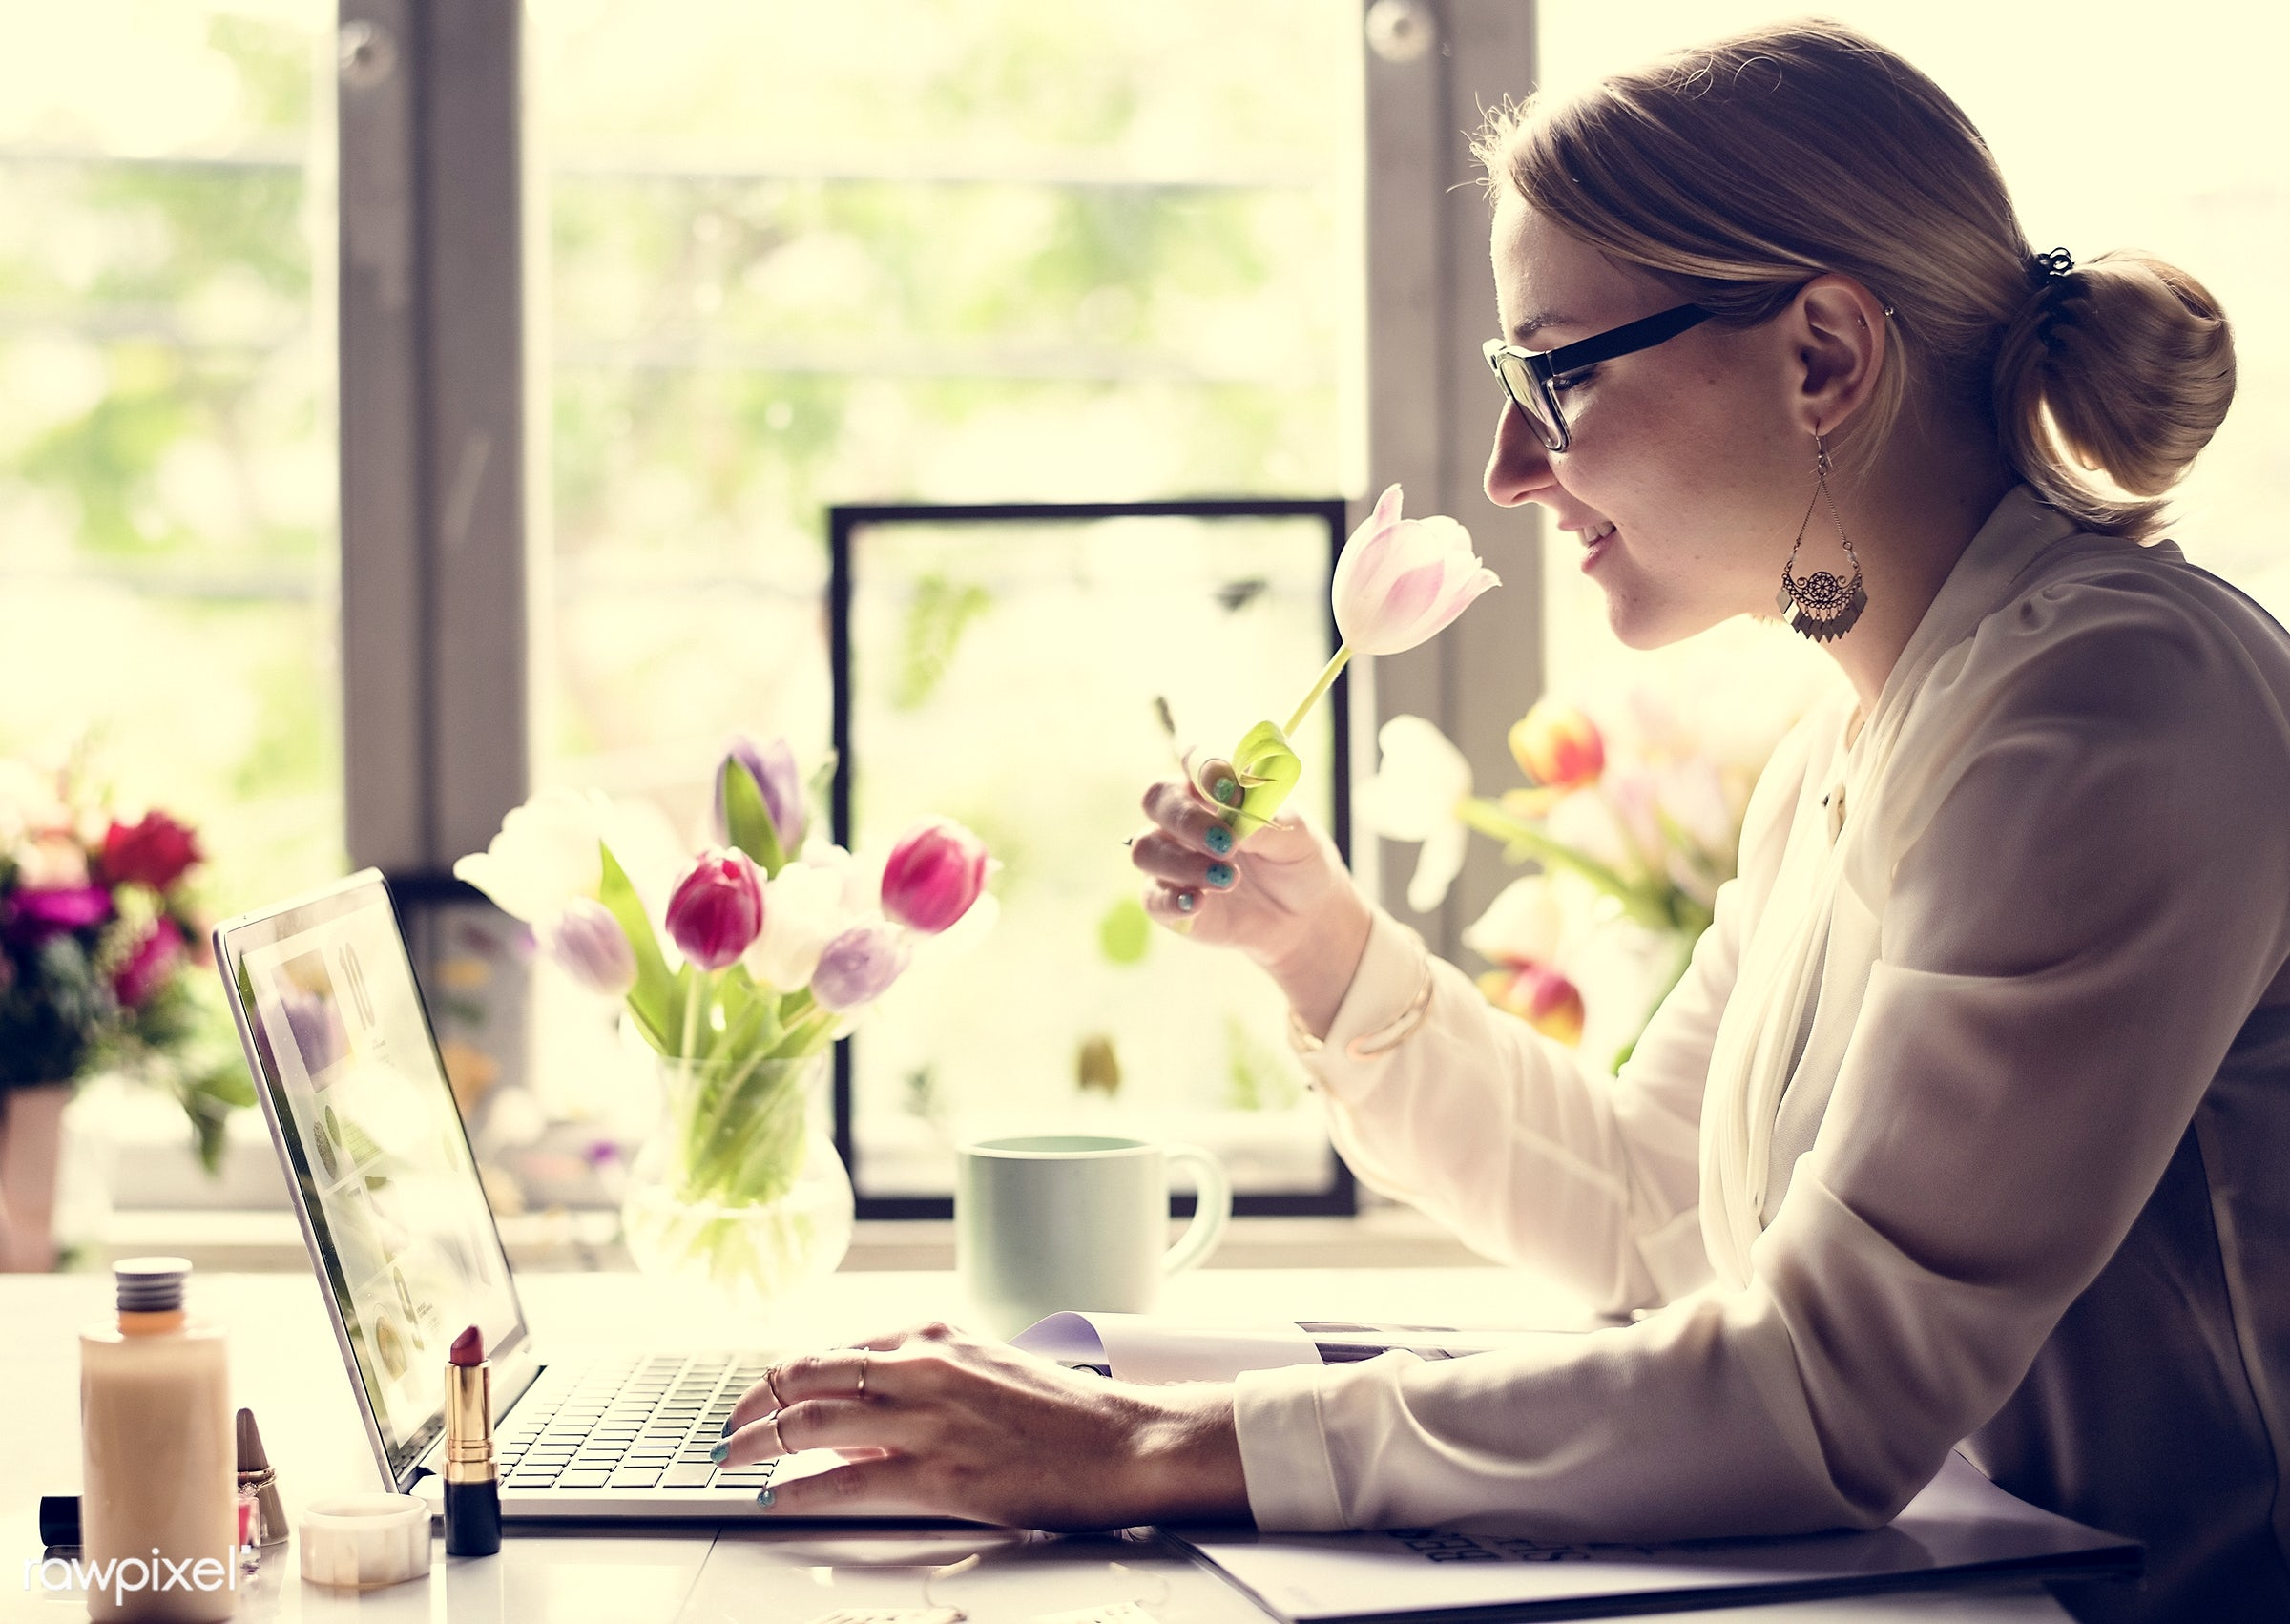 laptop, attach, attached, beautiful, beauty, blossom, cafe, coffee, cosmetics, creative, creativity, cup, desk, dried plant...